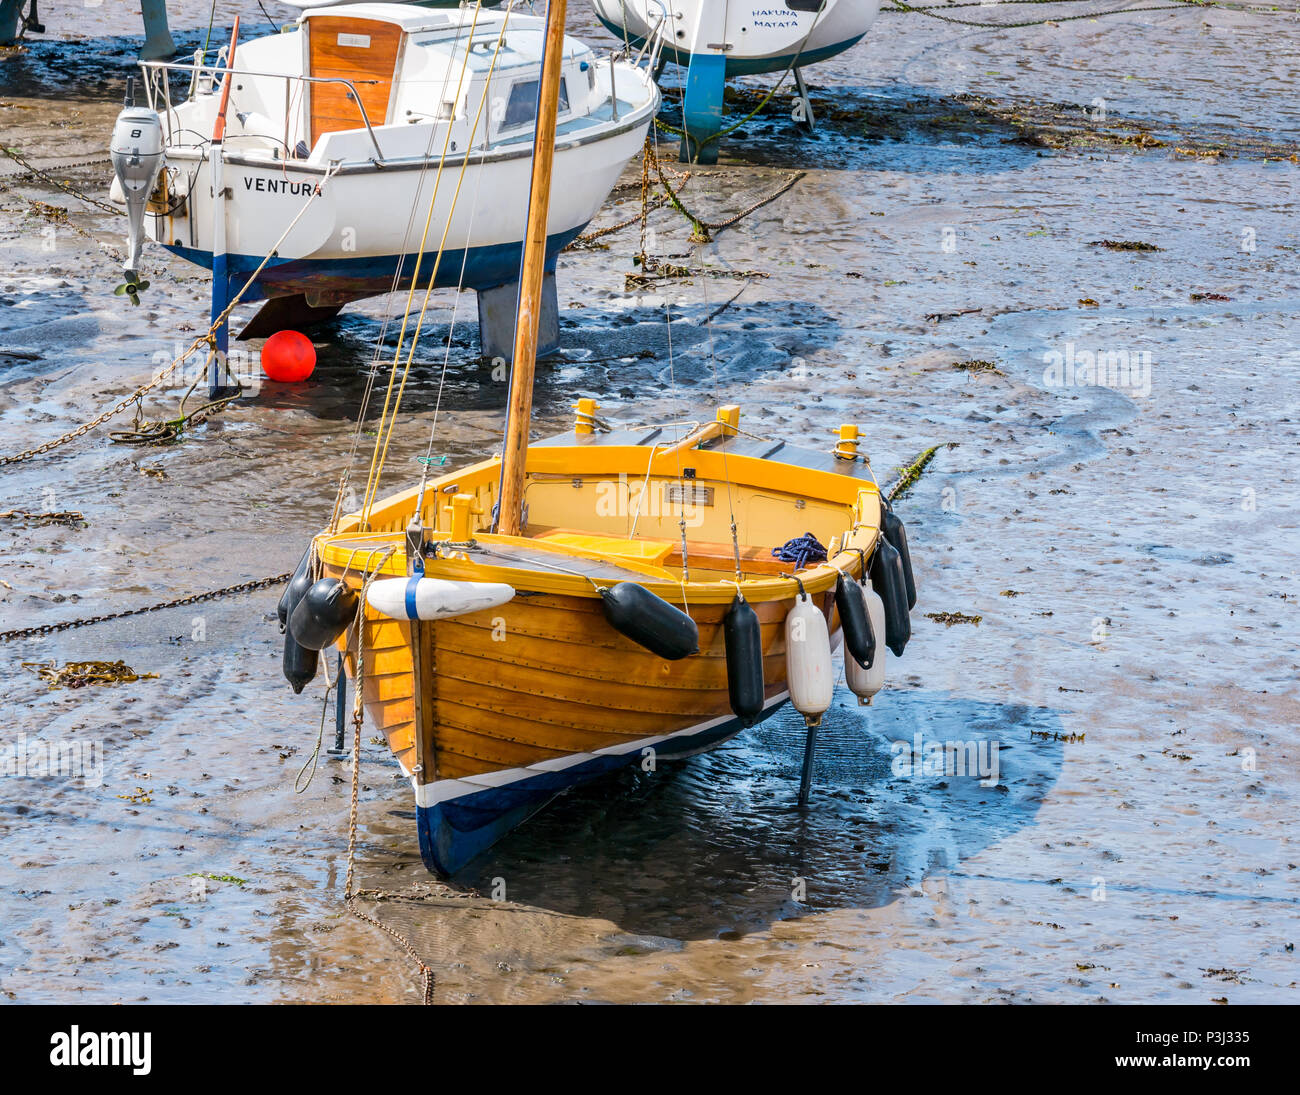 Wooden sailing boat and other boats in mud at low tide, North Berwick harbour, east Lothian, Scotland, UK Stock Photo